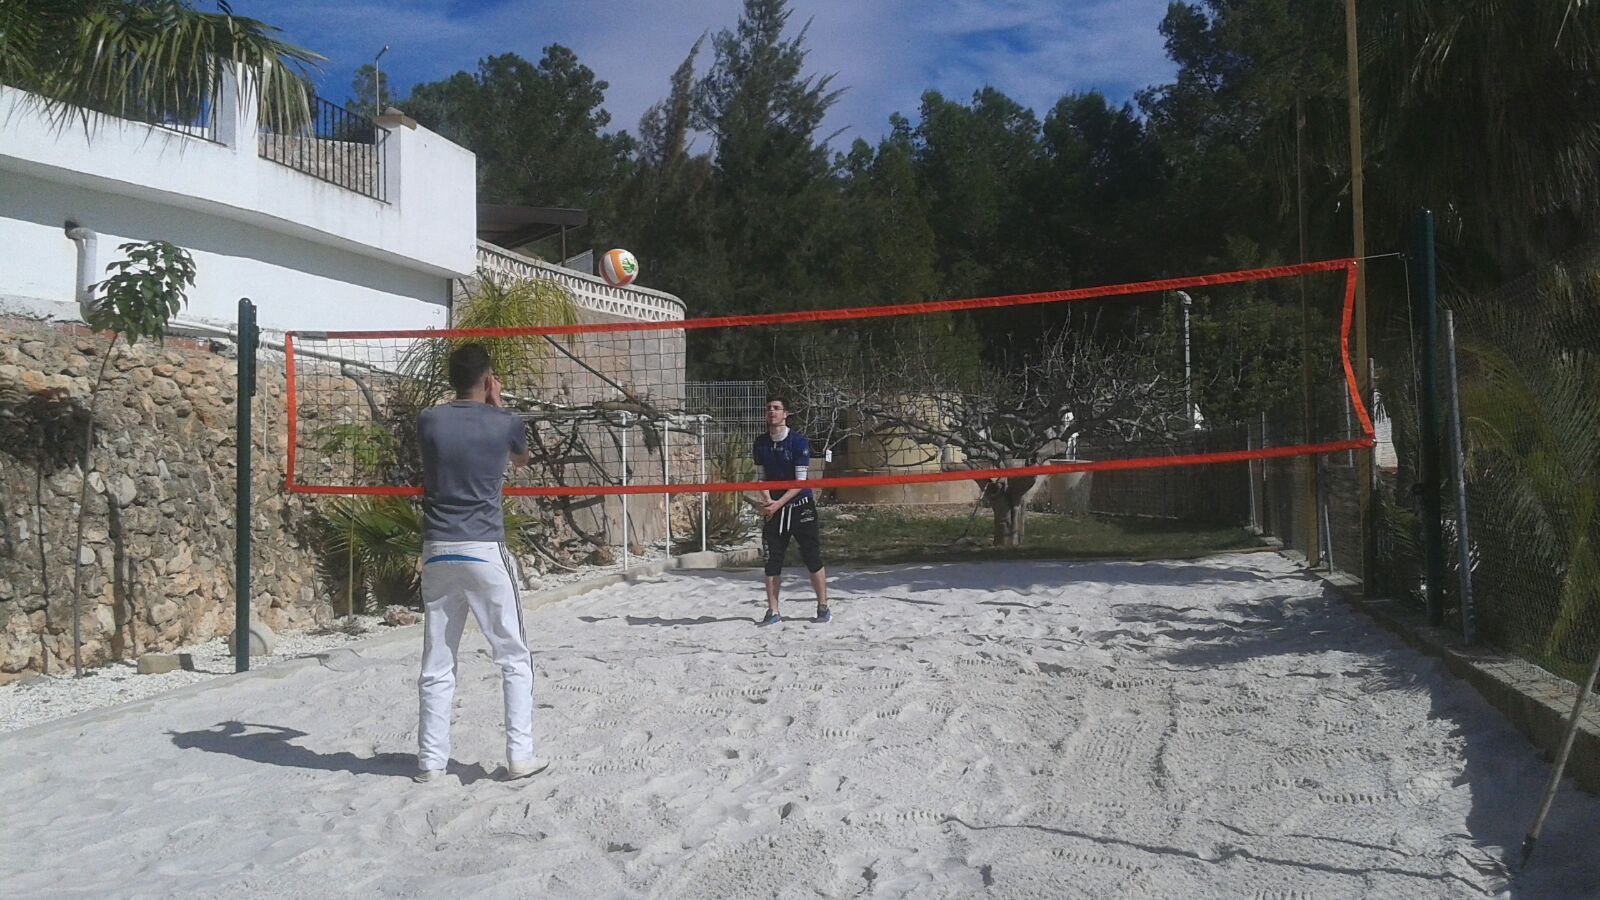 pista-voley-playa-postes-red